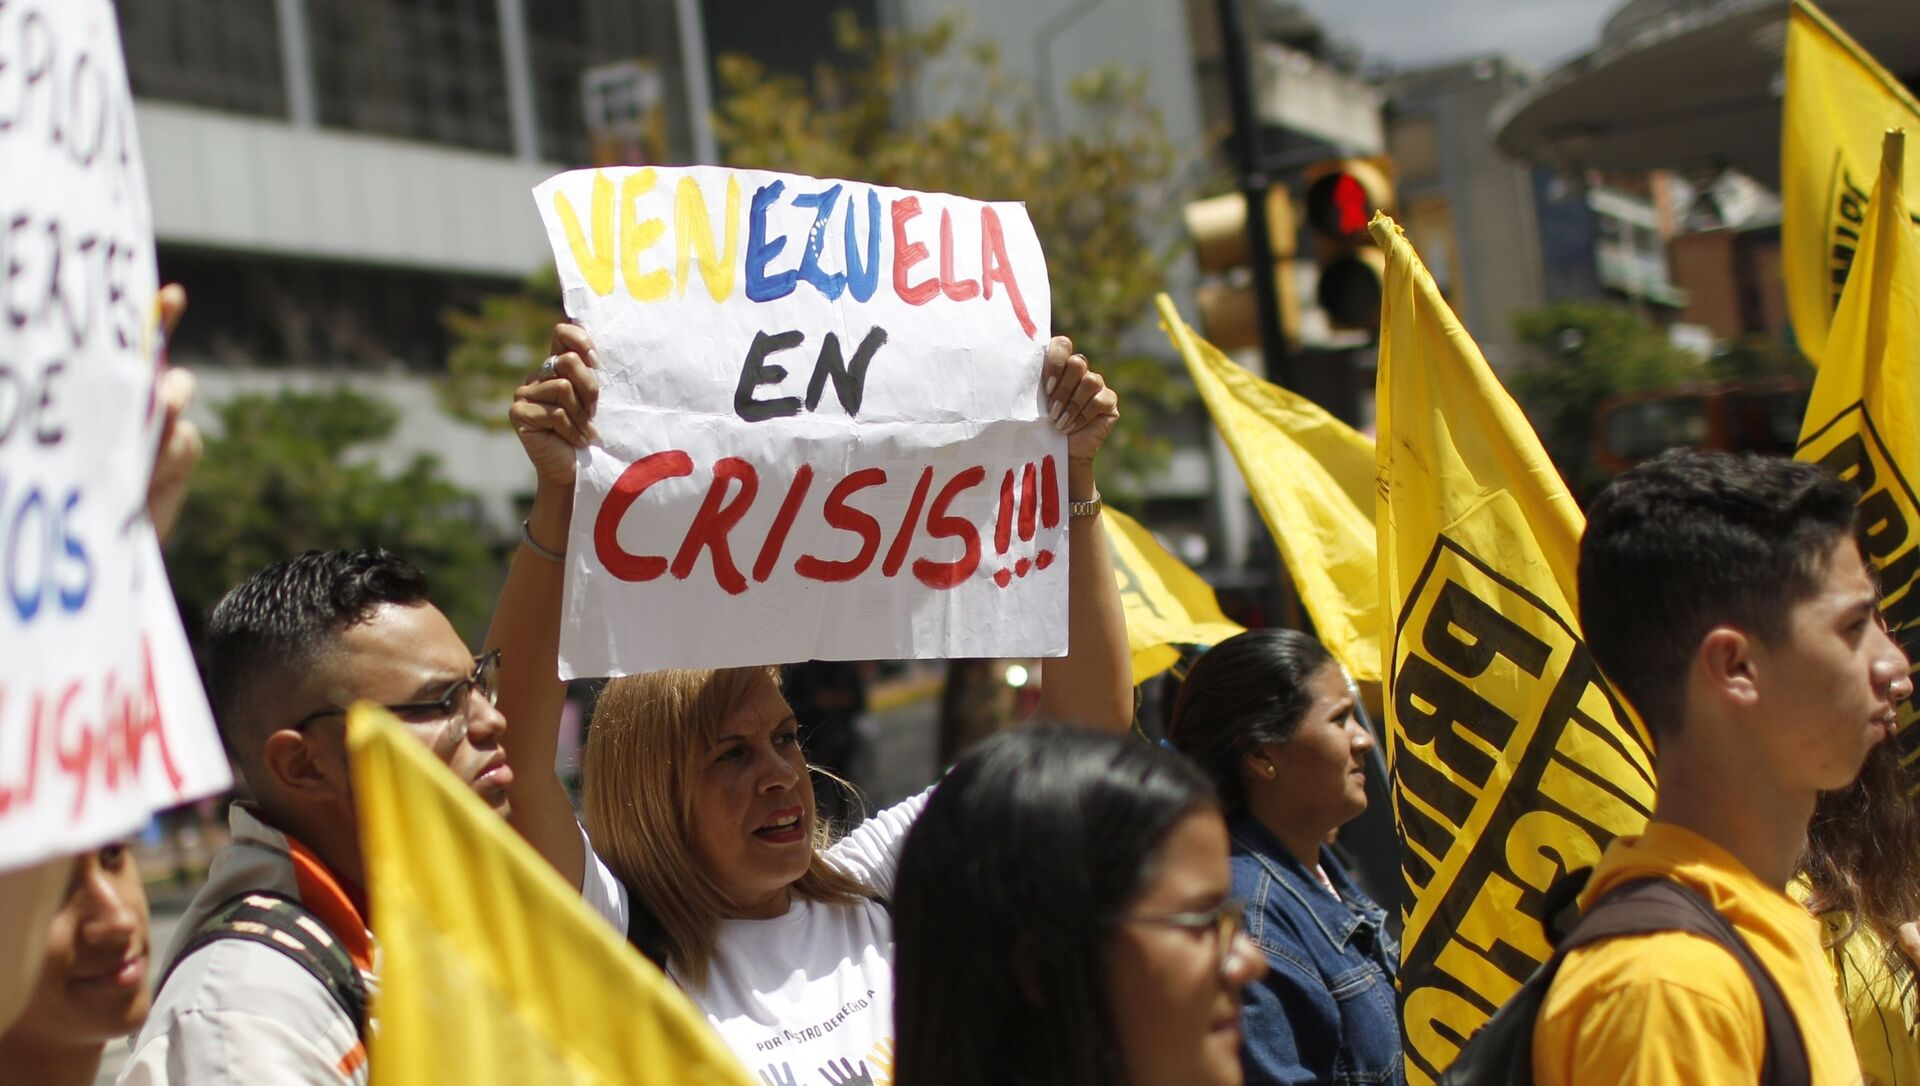 People protest against the Sao Paulo Forum in Caracas, Venezuela, Friday, July 26, 2019. Venezuela is hosting leftist activists from around Latin America at the forum that has been criticized by opponents who say the fragile country can hardly afford to entertain hundreds of international guests. - Sputnik International, 1920, 20.06.2021